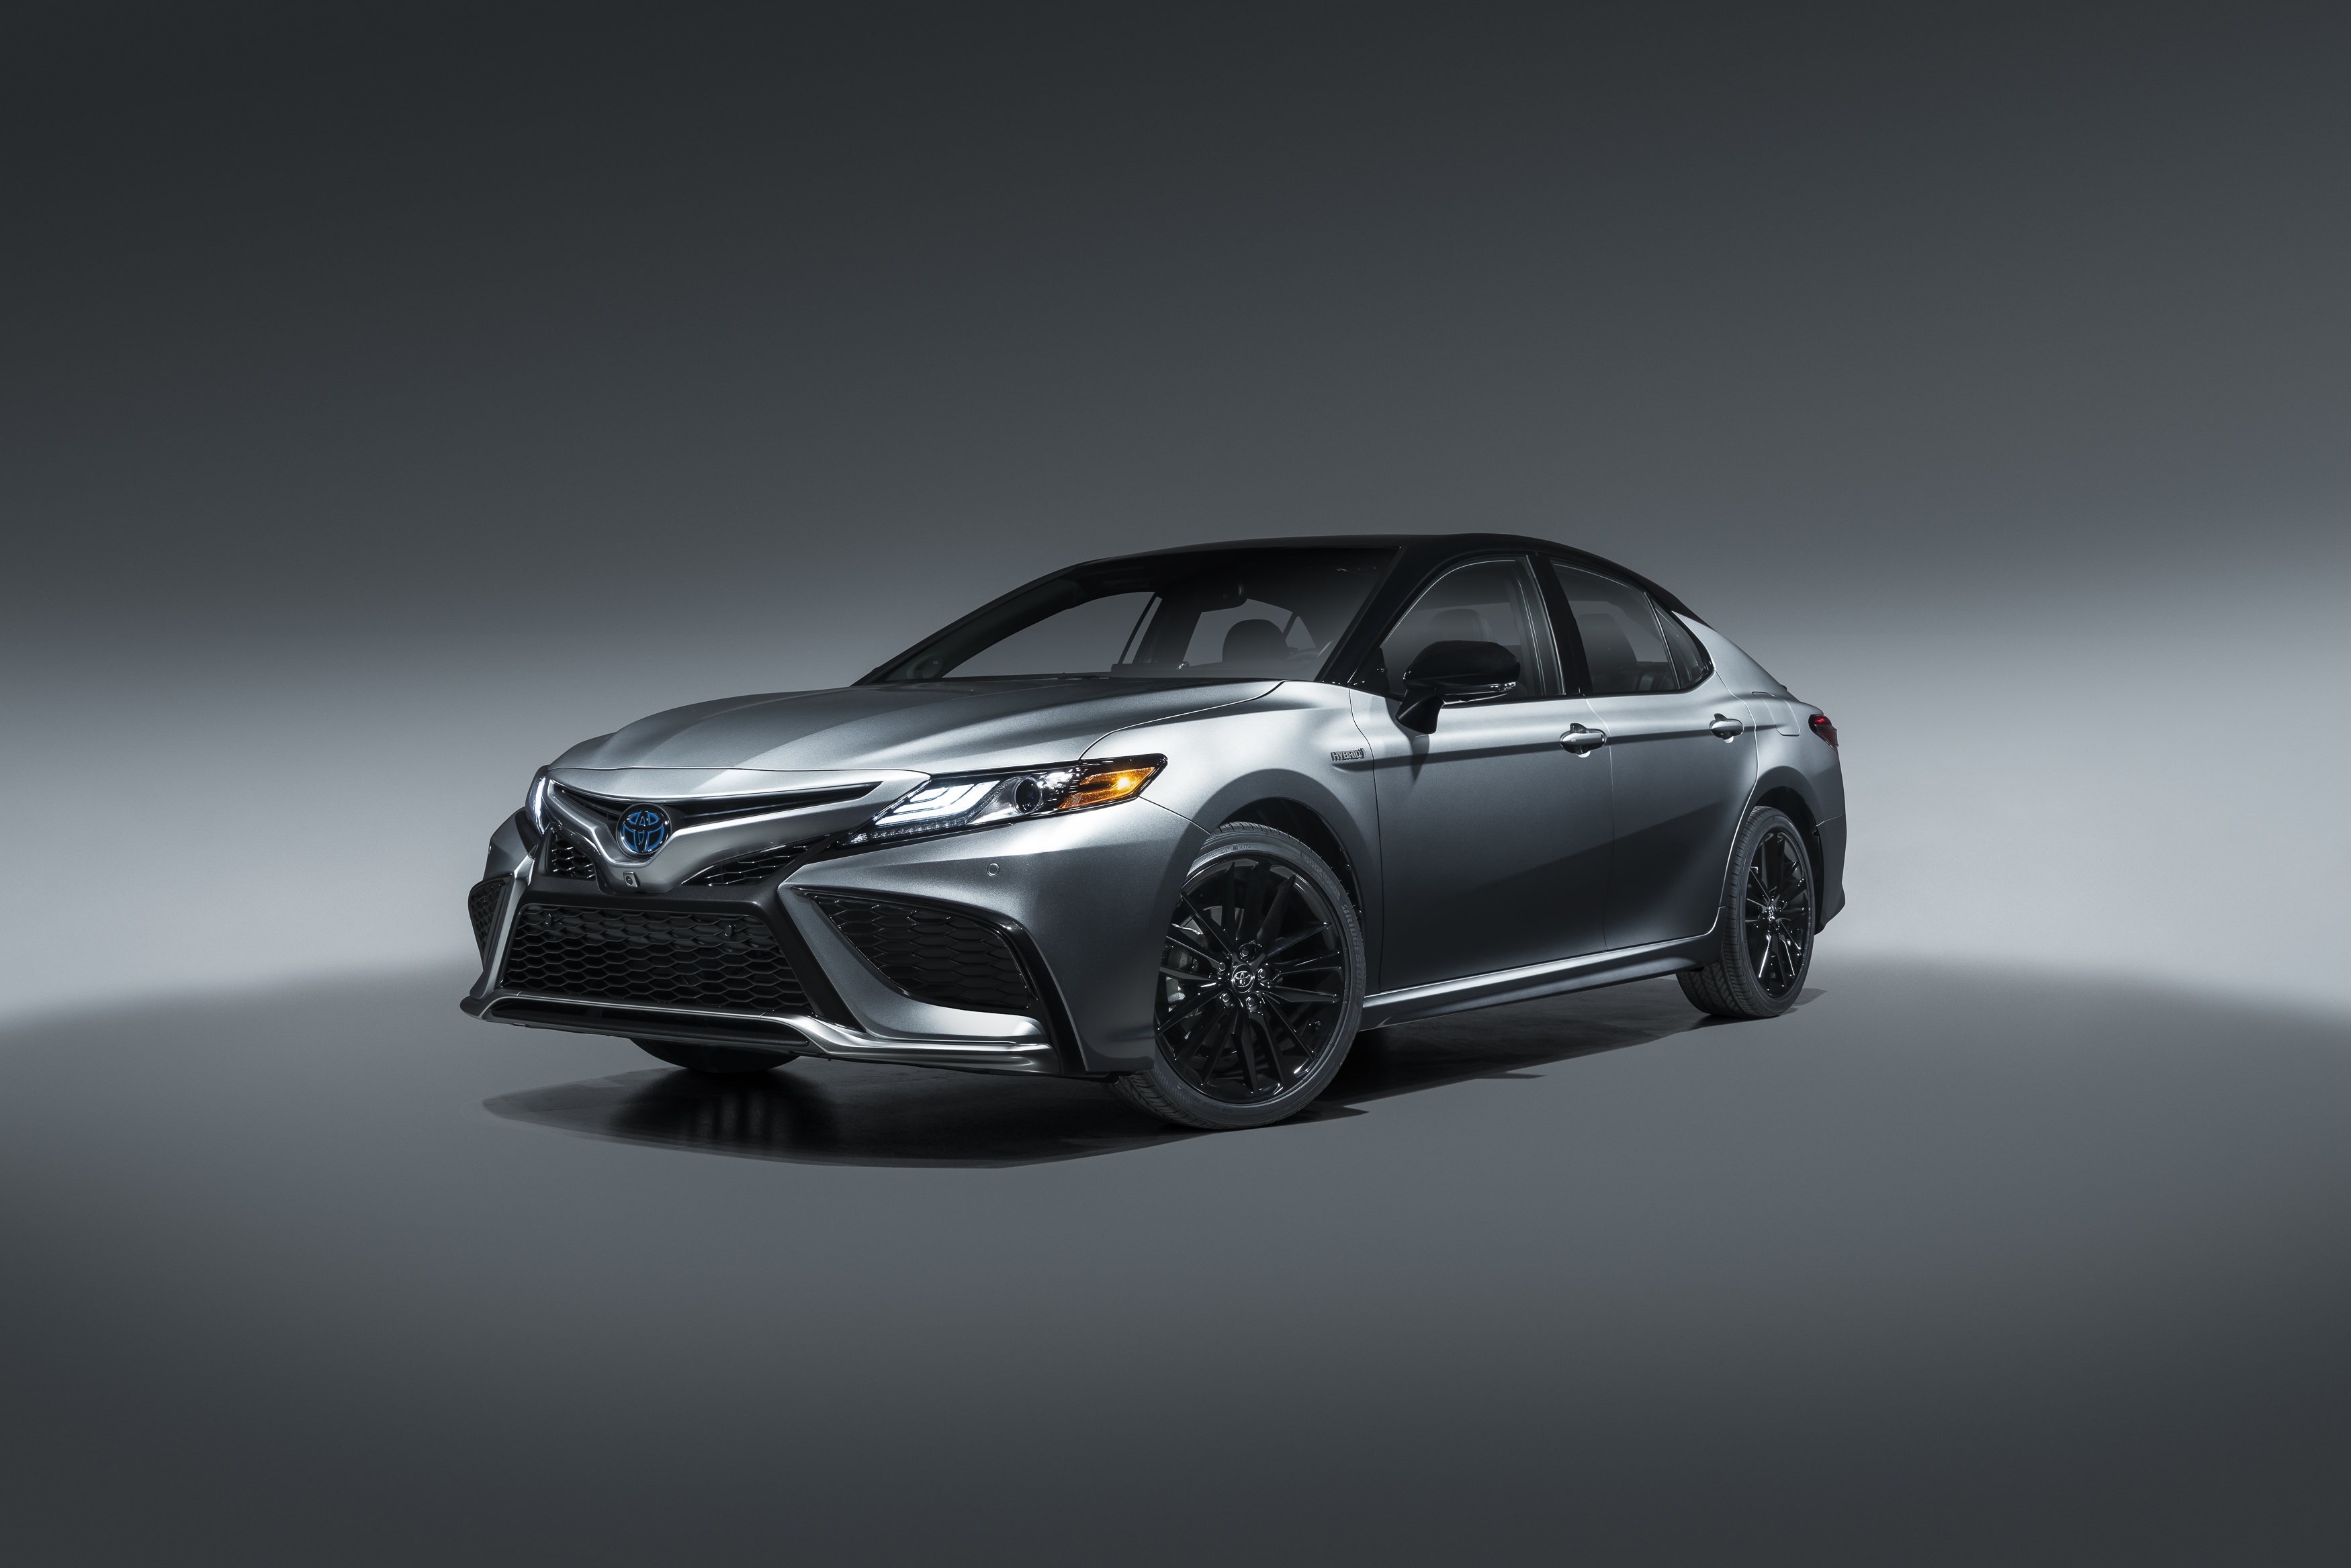 Clear Cut Leader The 2021 Toyota Camry Adds More Variants While Advancing Safety Toyota Usa Newsroom